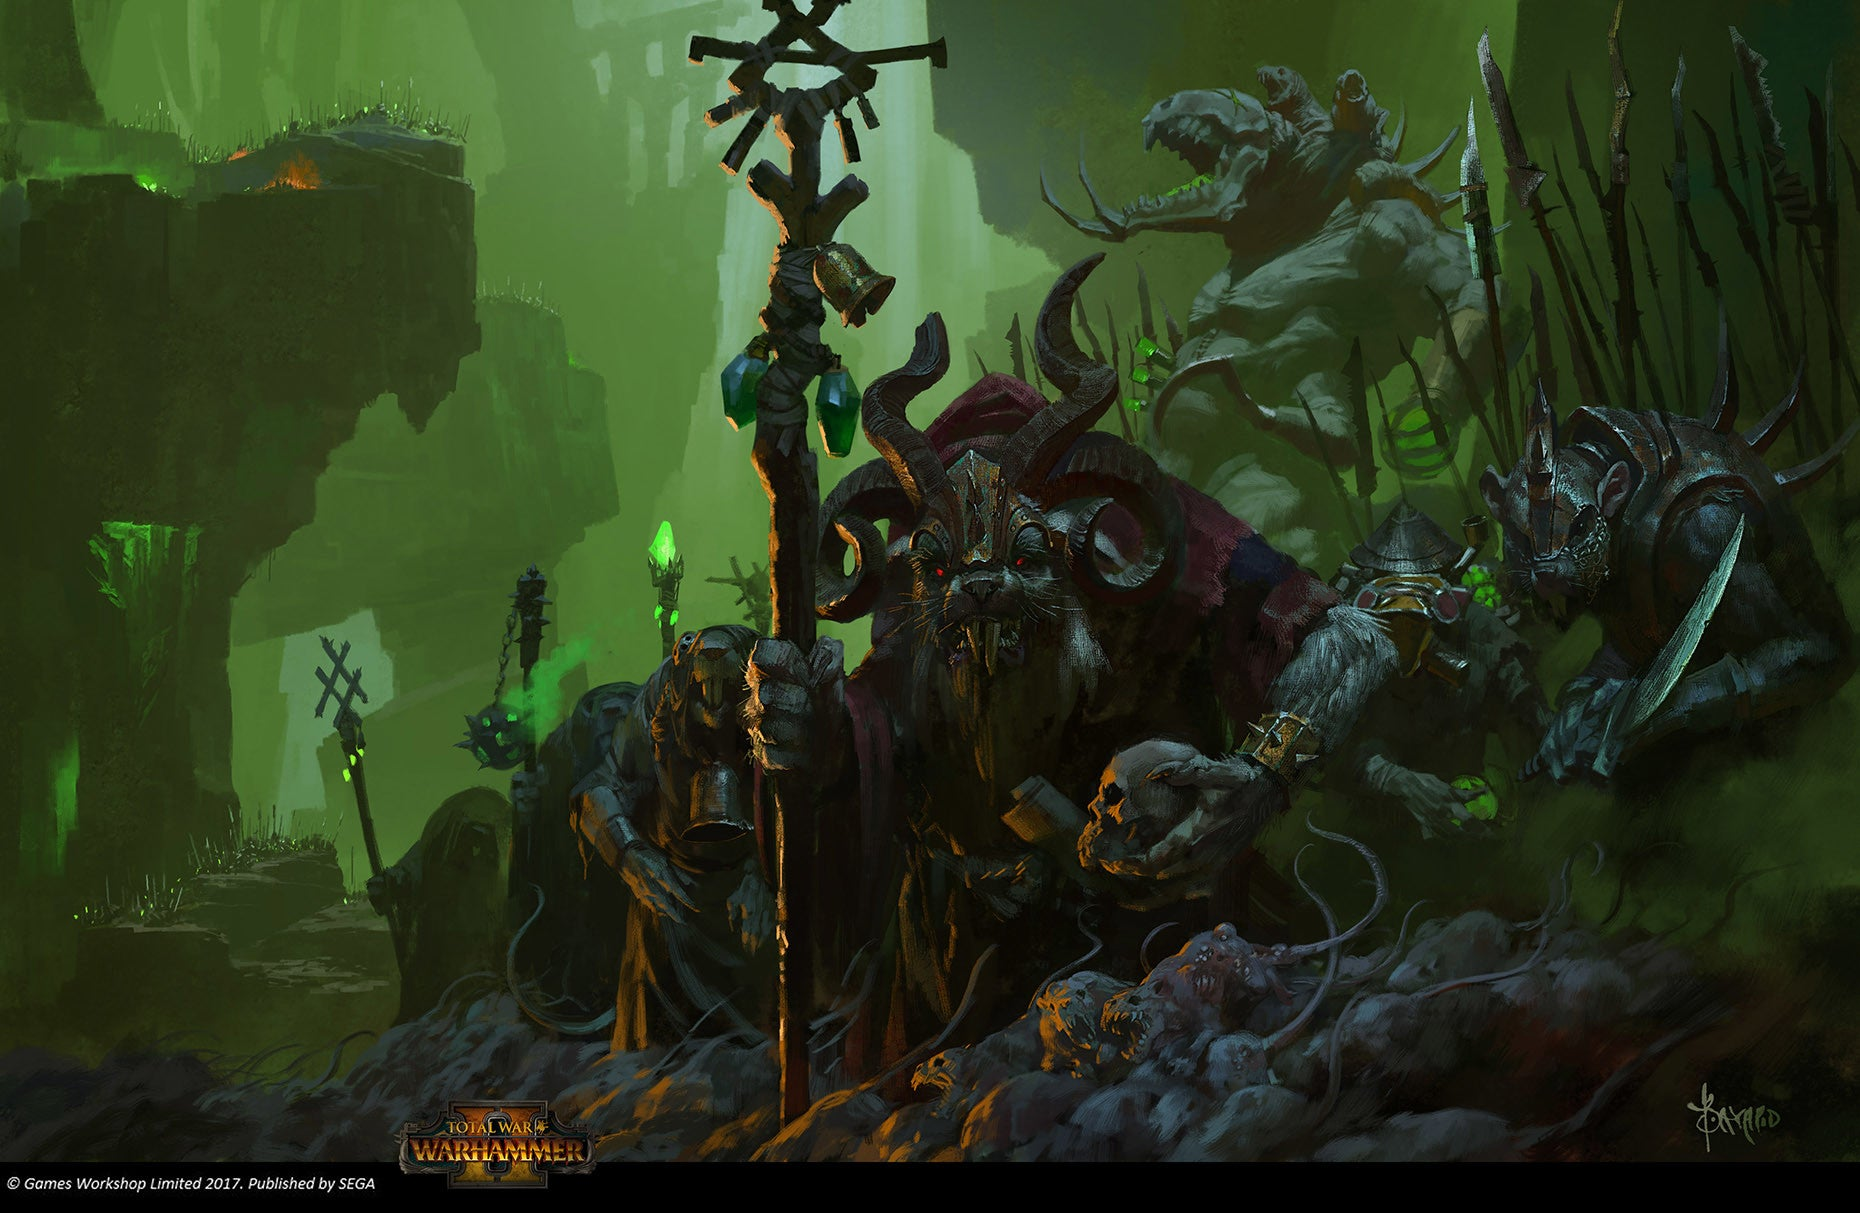 Total War Warhammer Ii Ymmv Tv Tropes The story was written by soon tae kim and illustrations by soon tae kim. total war warhammer ii ymmv tv tropes